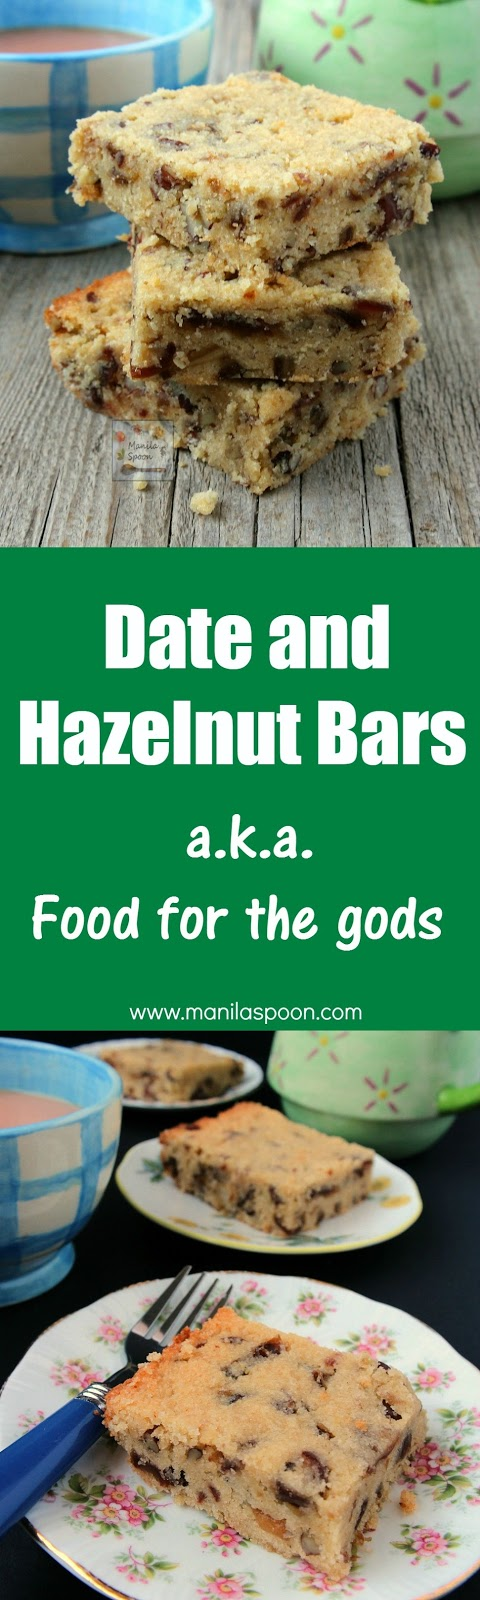 "Known locally as ""food for the gods"" this is a holiday-perfect bar that's rich, buttery, nutty and totally delicious! Use walnut, pecan, hazelnut or even cashews for the nuts. Regular and gluten-free option available. 